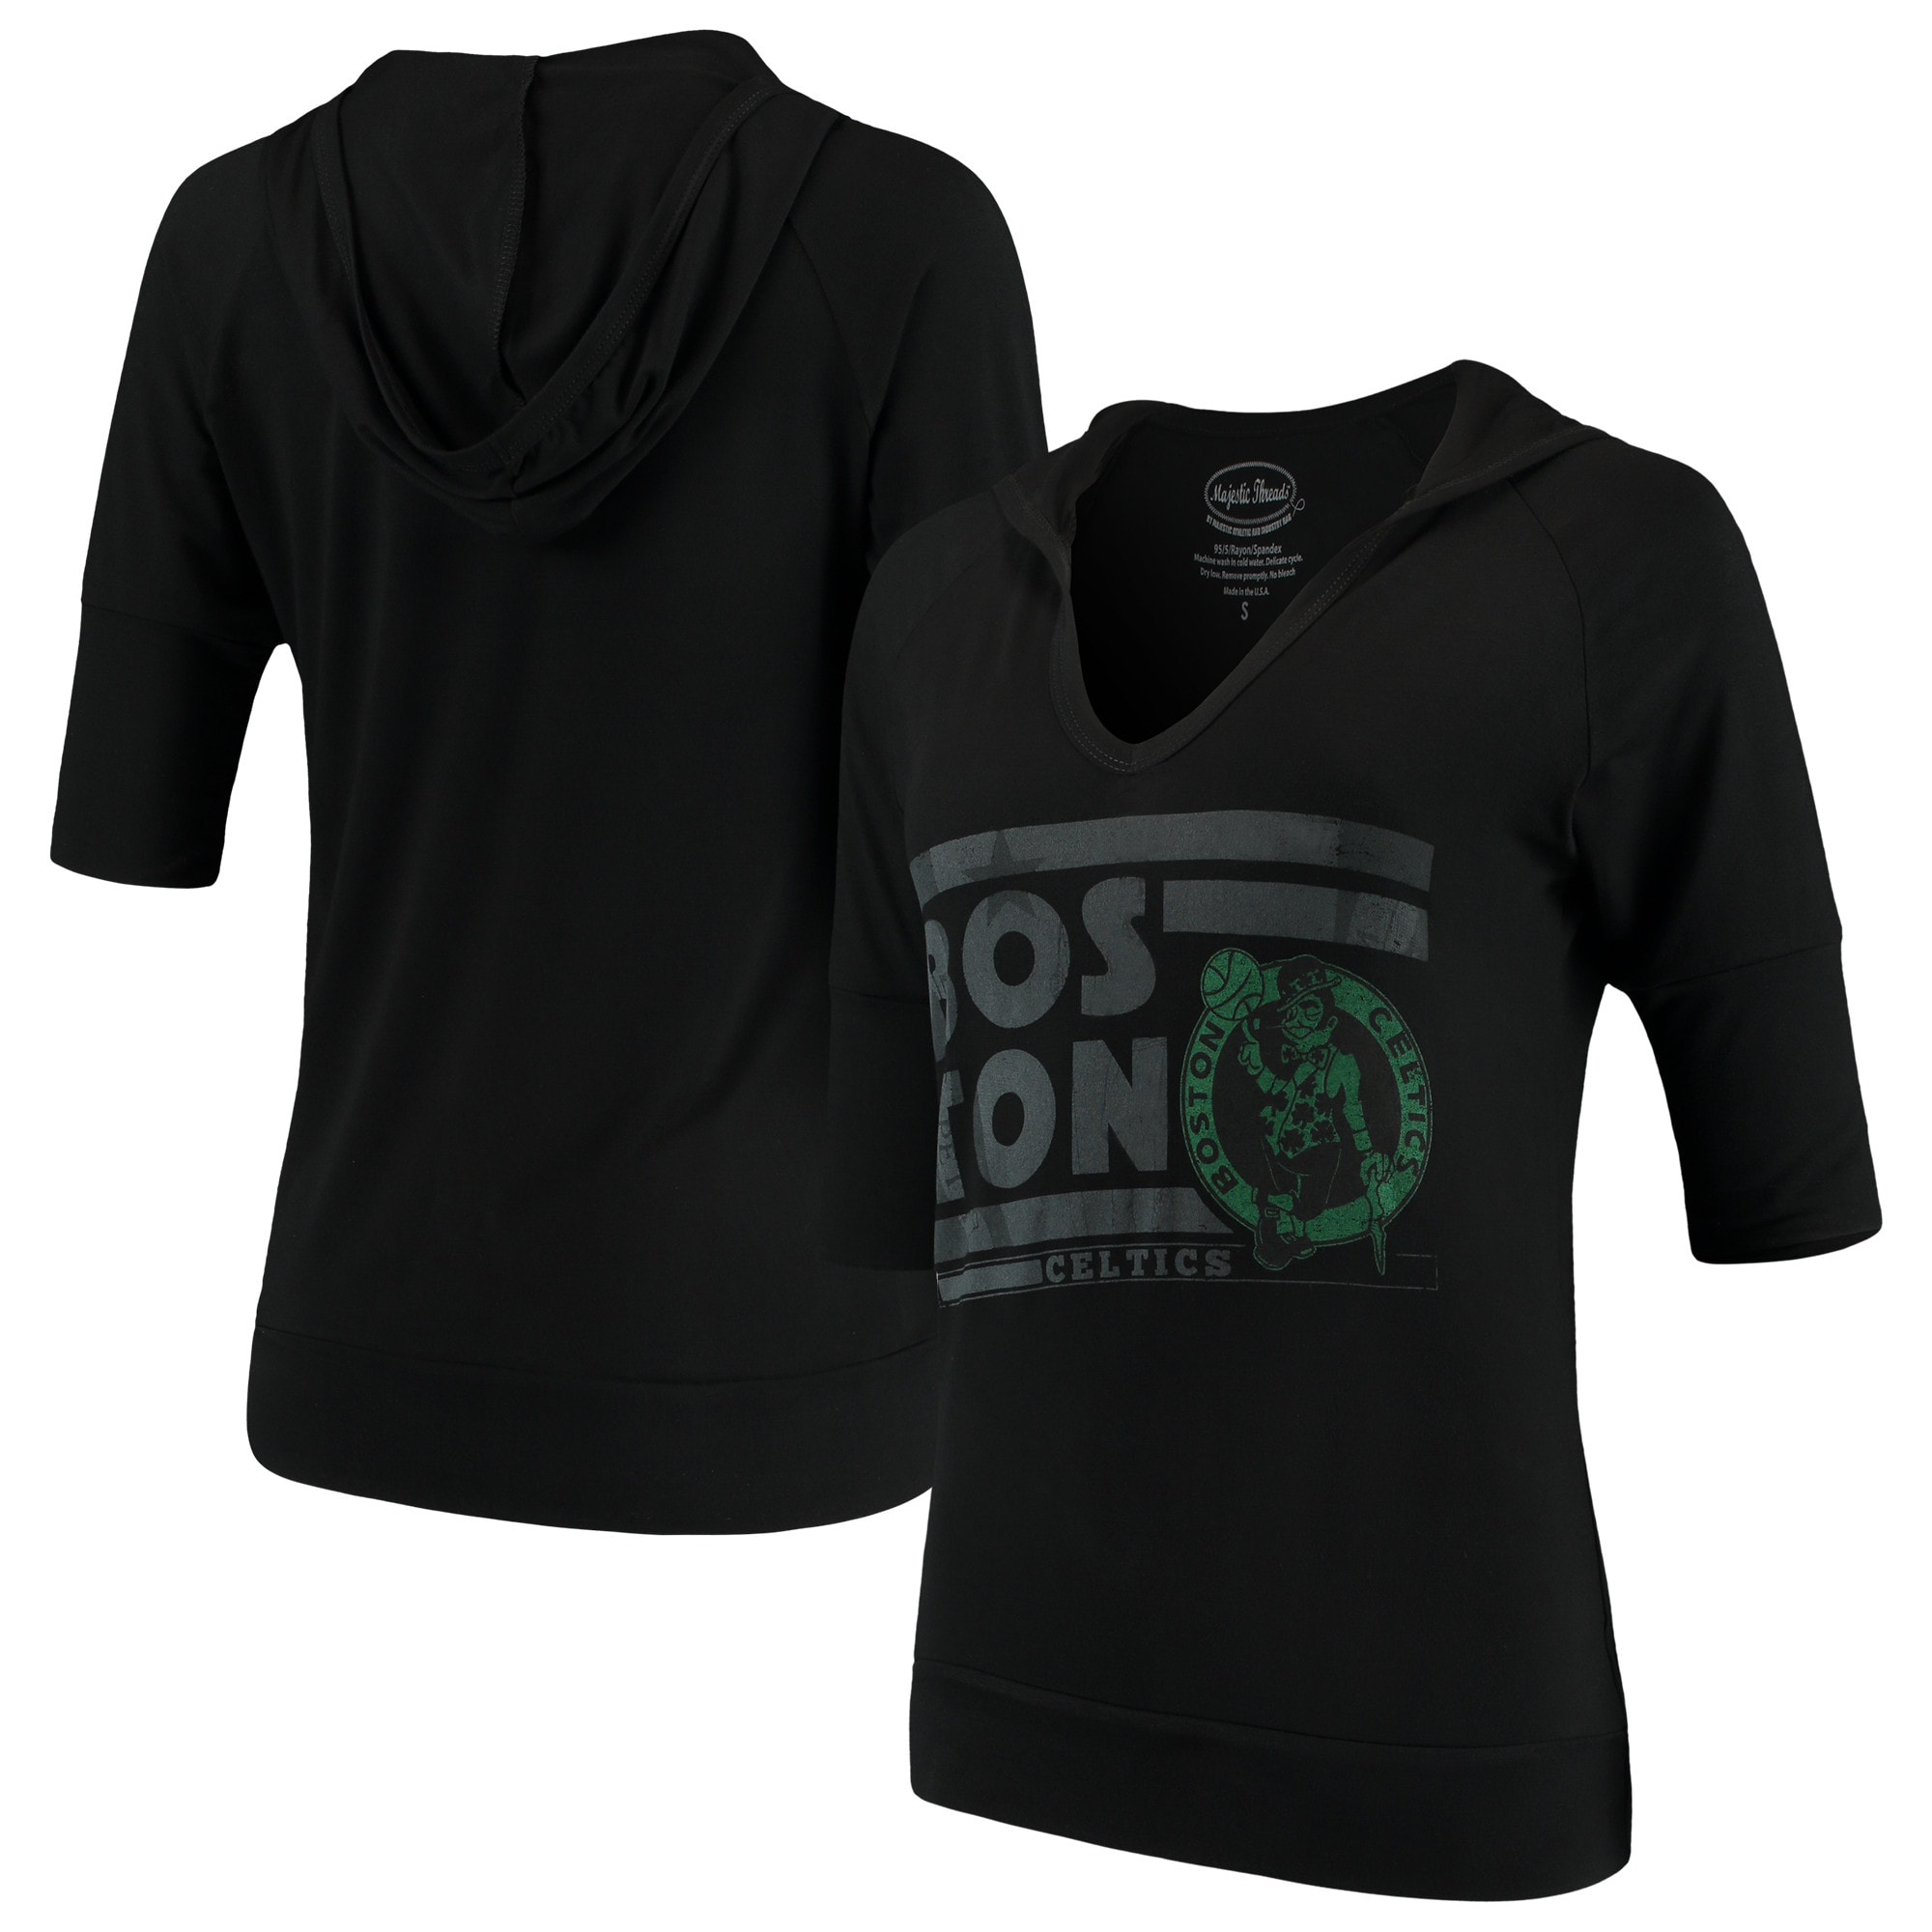 Boston Celtics Majestic Threads Women's City State Elbow Sleeve V-Neck Hooded Pullover Top - Black